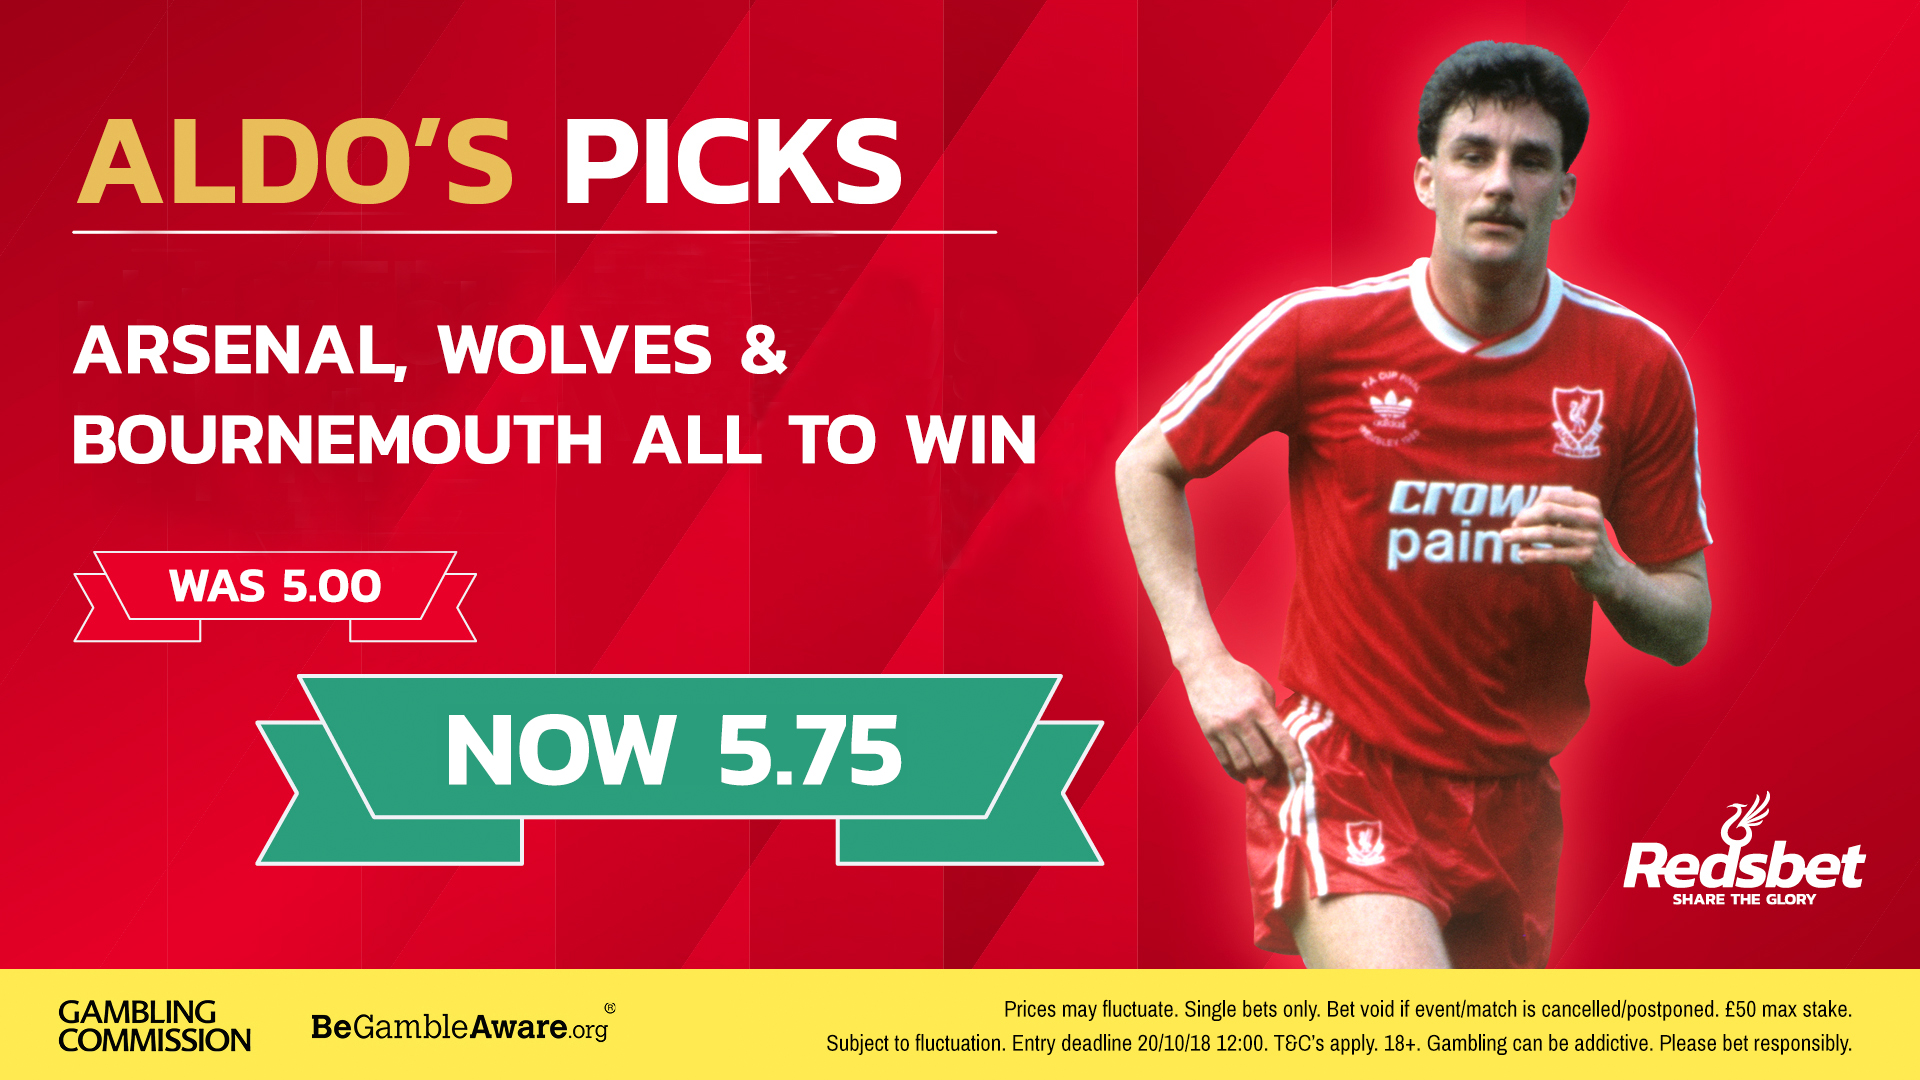 ALDO'S PICKS: GAMEWEEK NINE